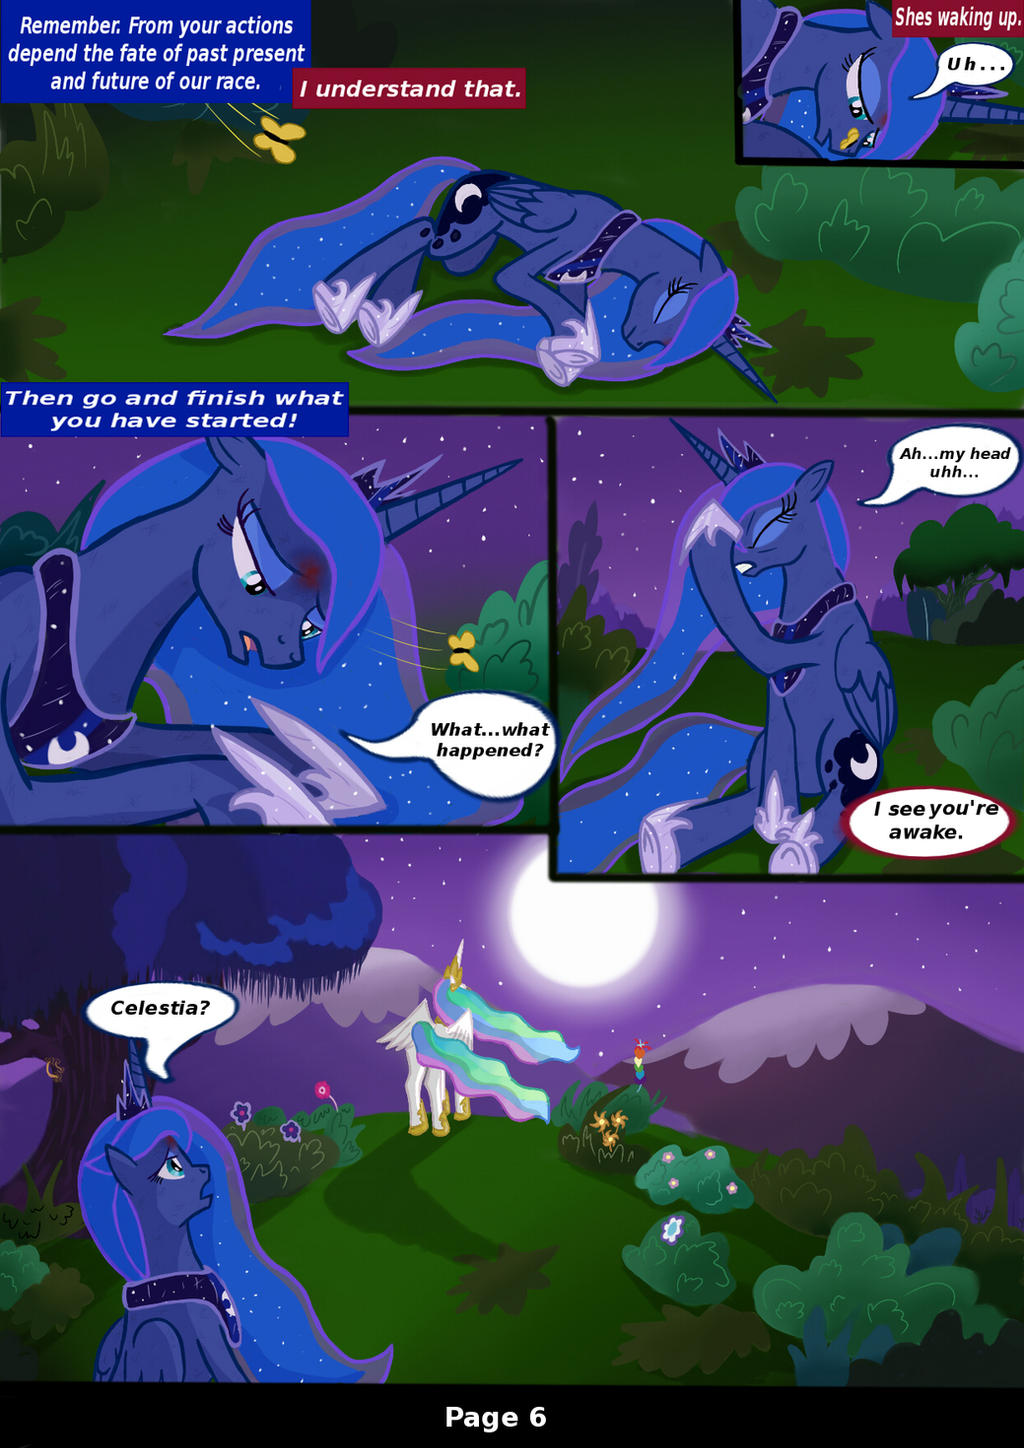 MLP: FIM Rising Darkness Page 6 by Bonaxor